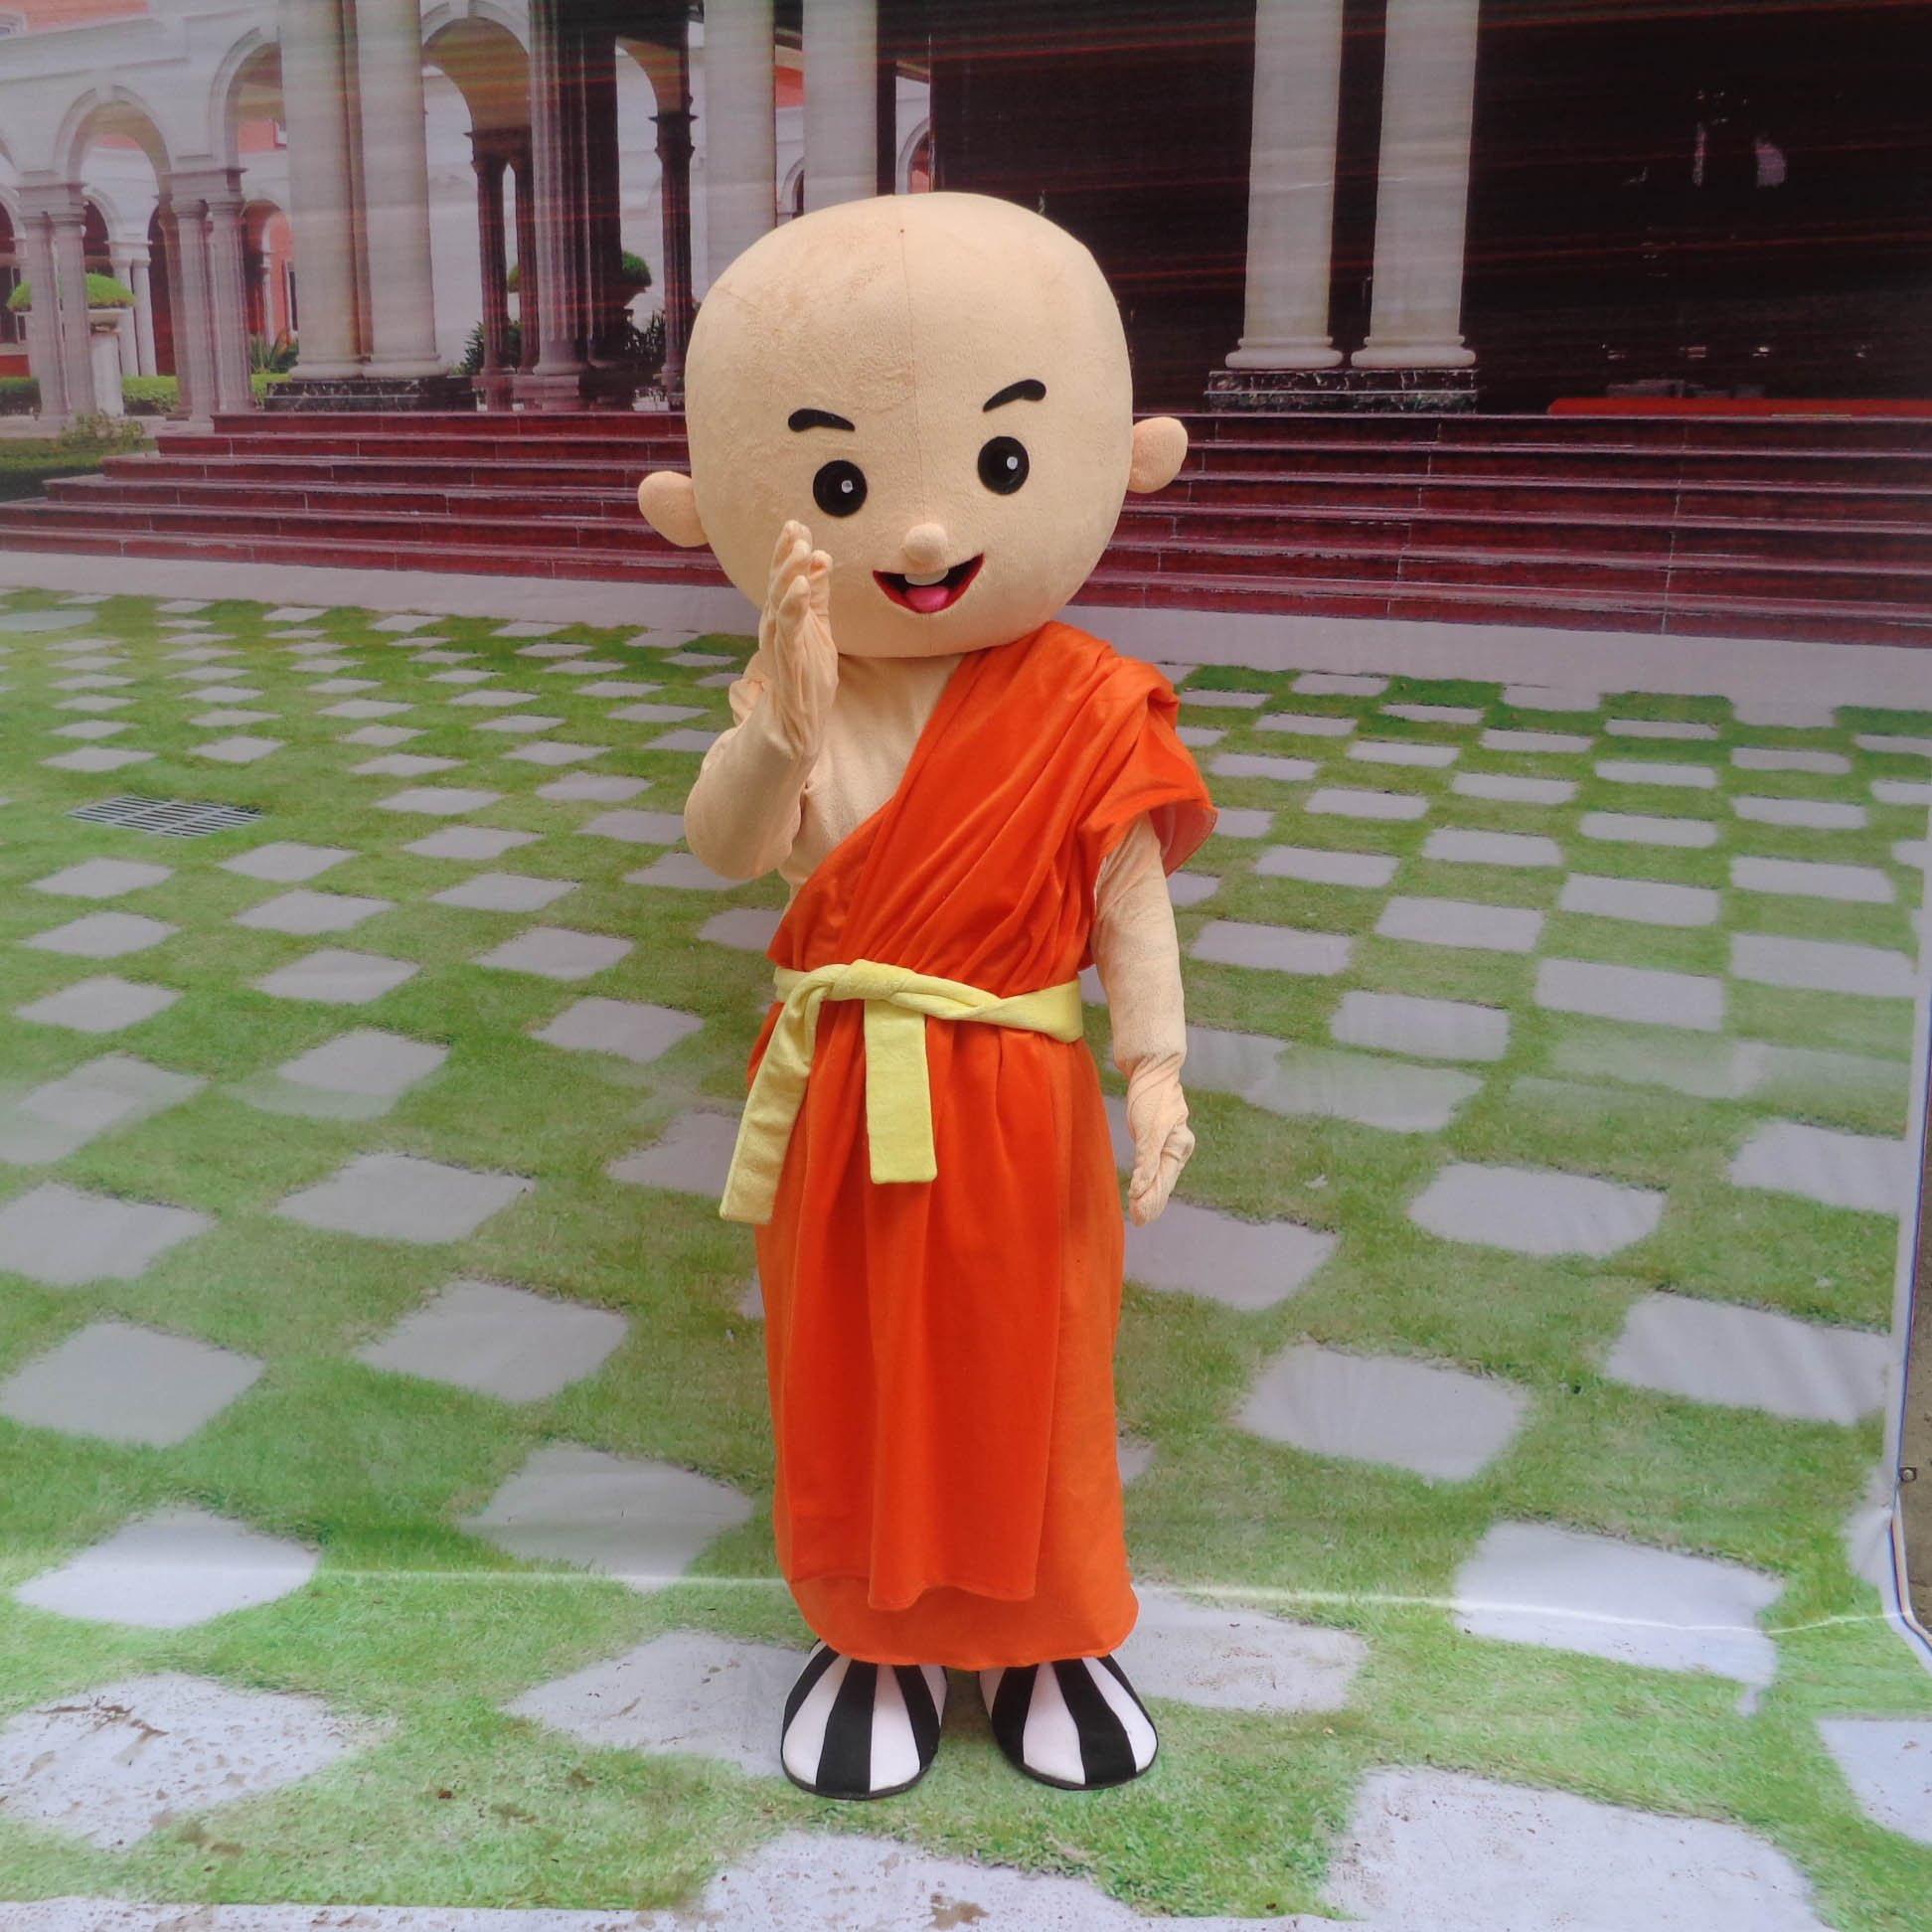 Cartoon Doll Clothing Cartoon Walking Doll Clothing Cartoon Show Clothing Doll Clothes Monk Mascot Costume